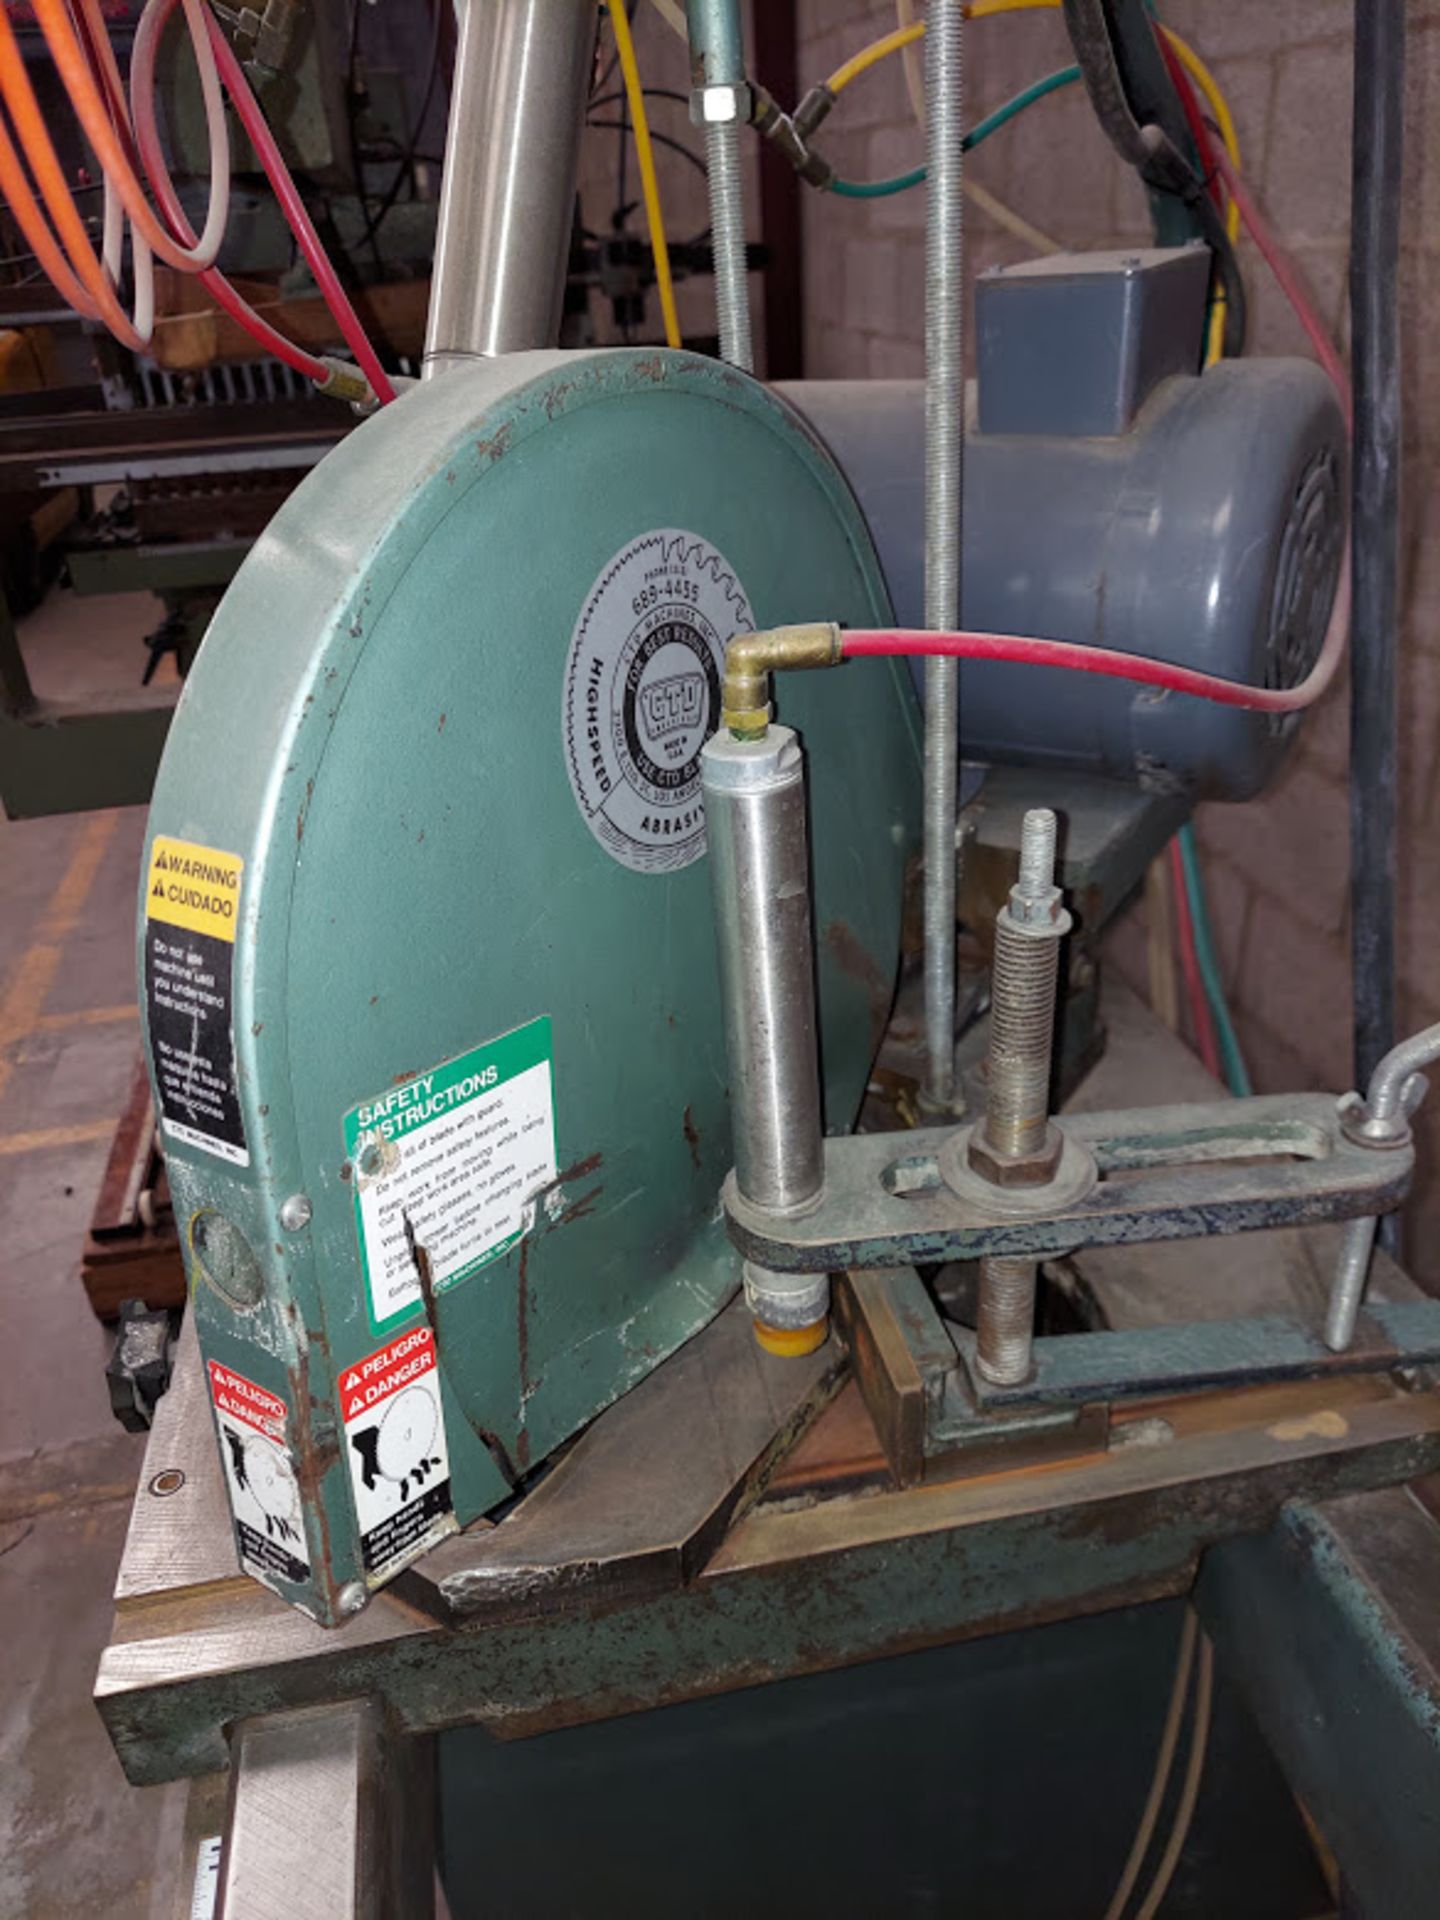 "CTD 12"" Double End Trim & Miter Saw, Model #DM200, 2 - Baldor 2 HP 230/460 Volts 3 Phase - Image 4 of 6"